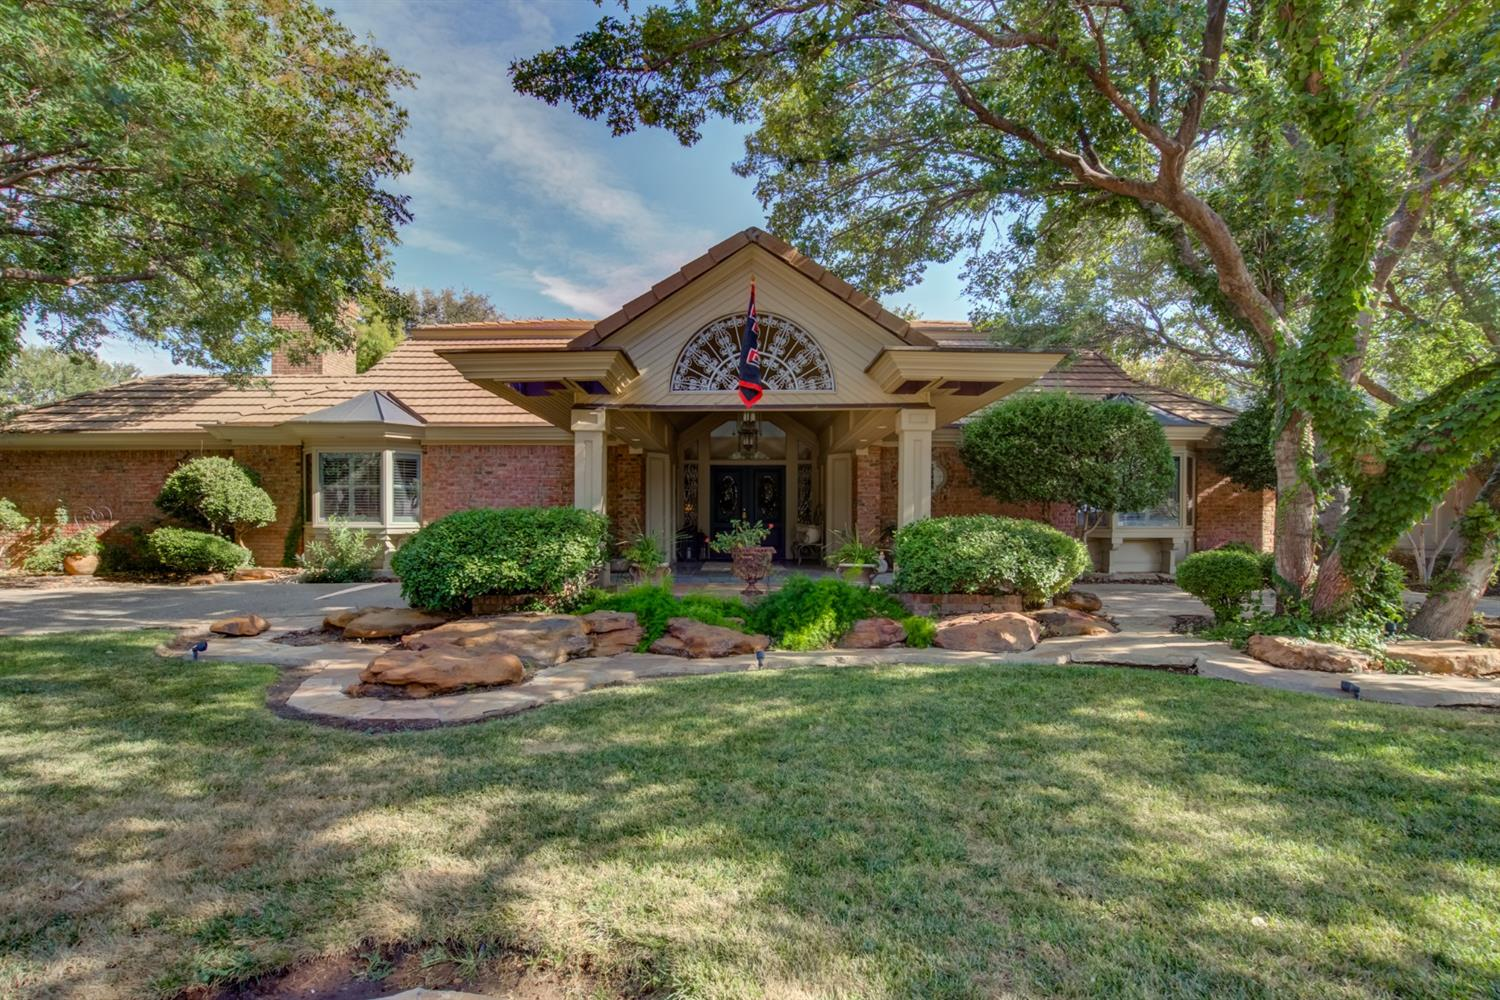 5118 2nd Street, Lubbock in Lubbock County, TX 79416 Home for Sale